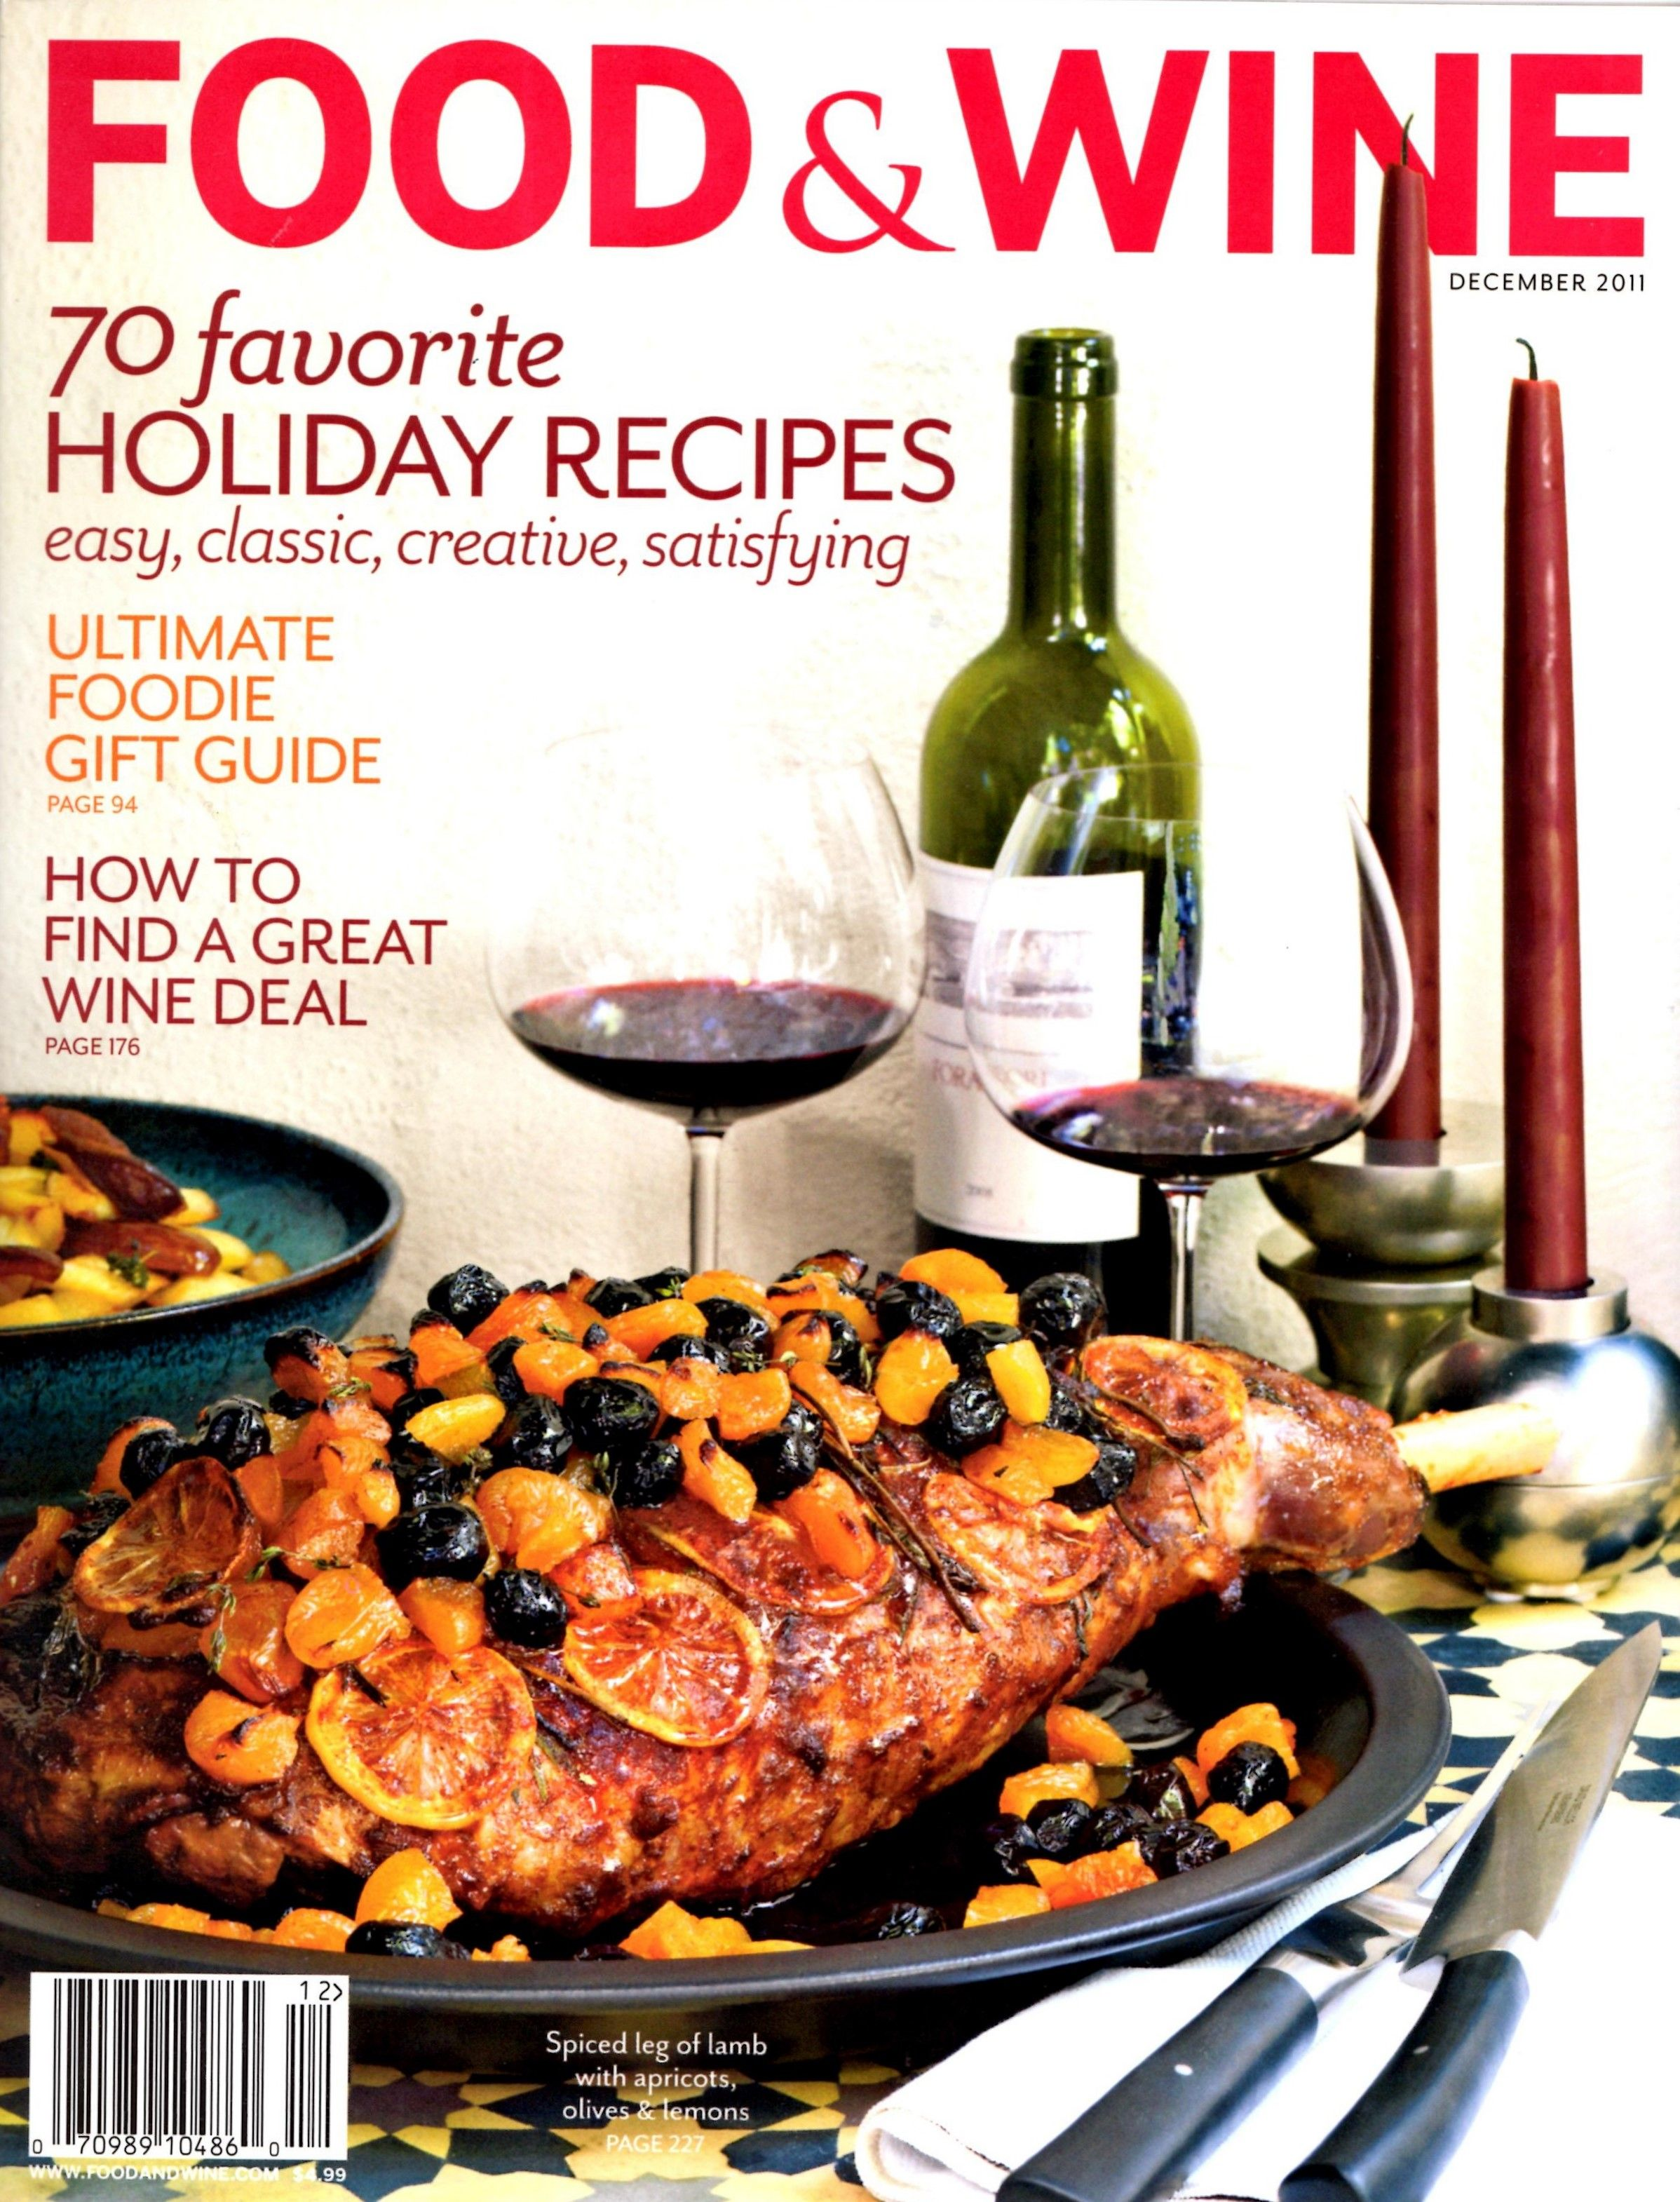 Food wine magazine december cover recipe duvino wine www food wine magazine december 2011 christmas holiday mailed in cardboard forumfinder Choice Image